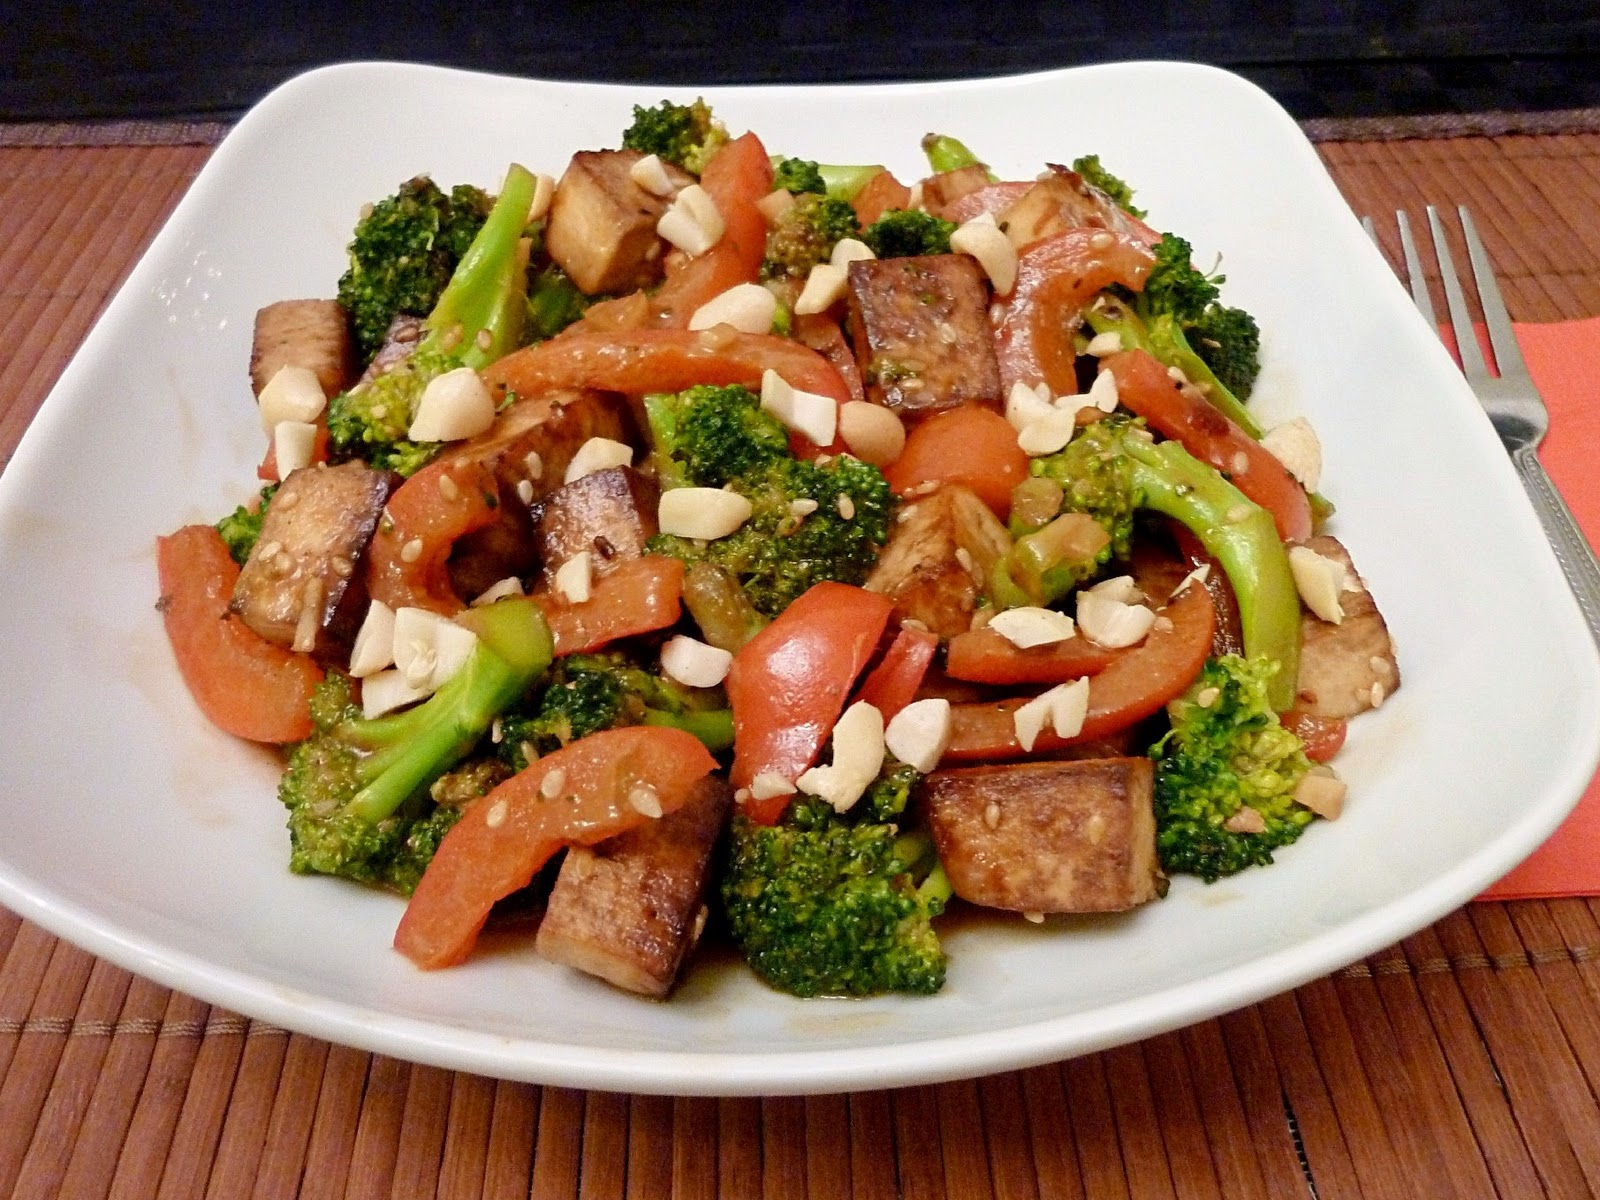 Vanilla & Spice: Broccoli Tofu Stir-Fry with Peanuts